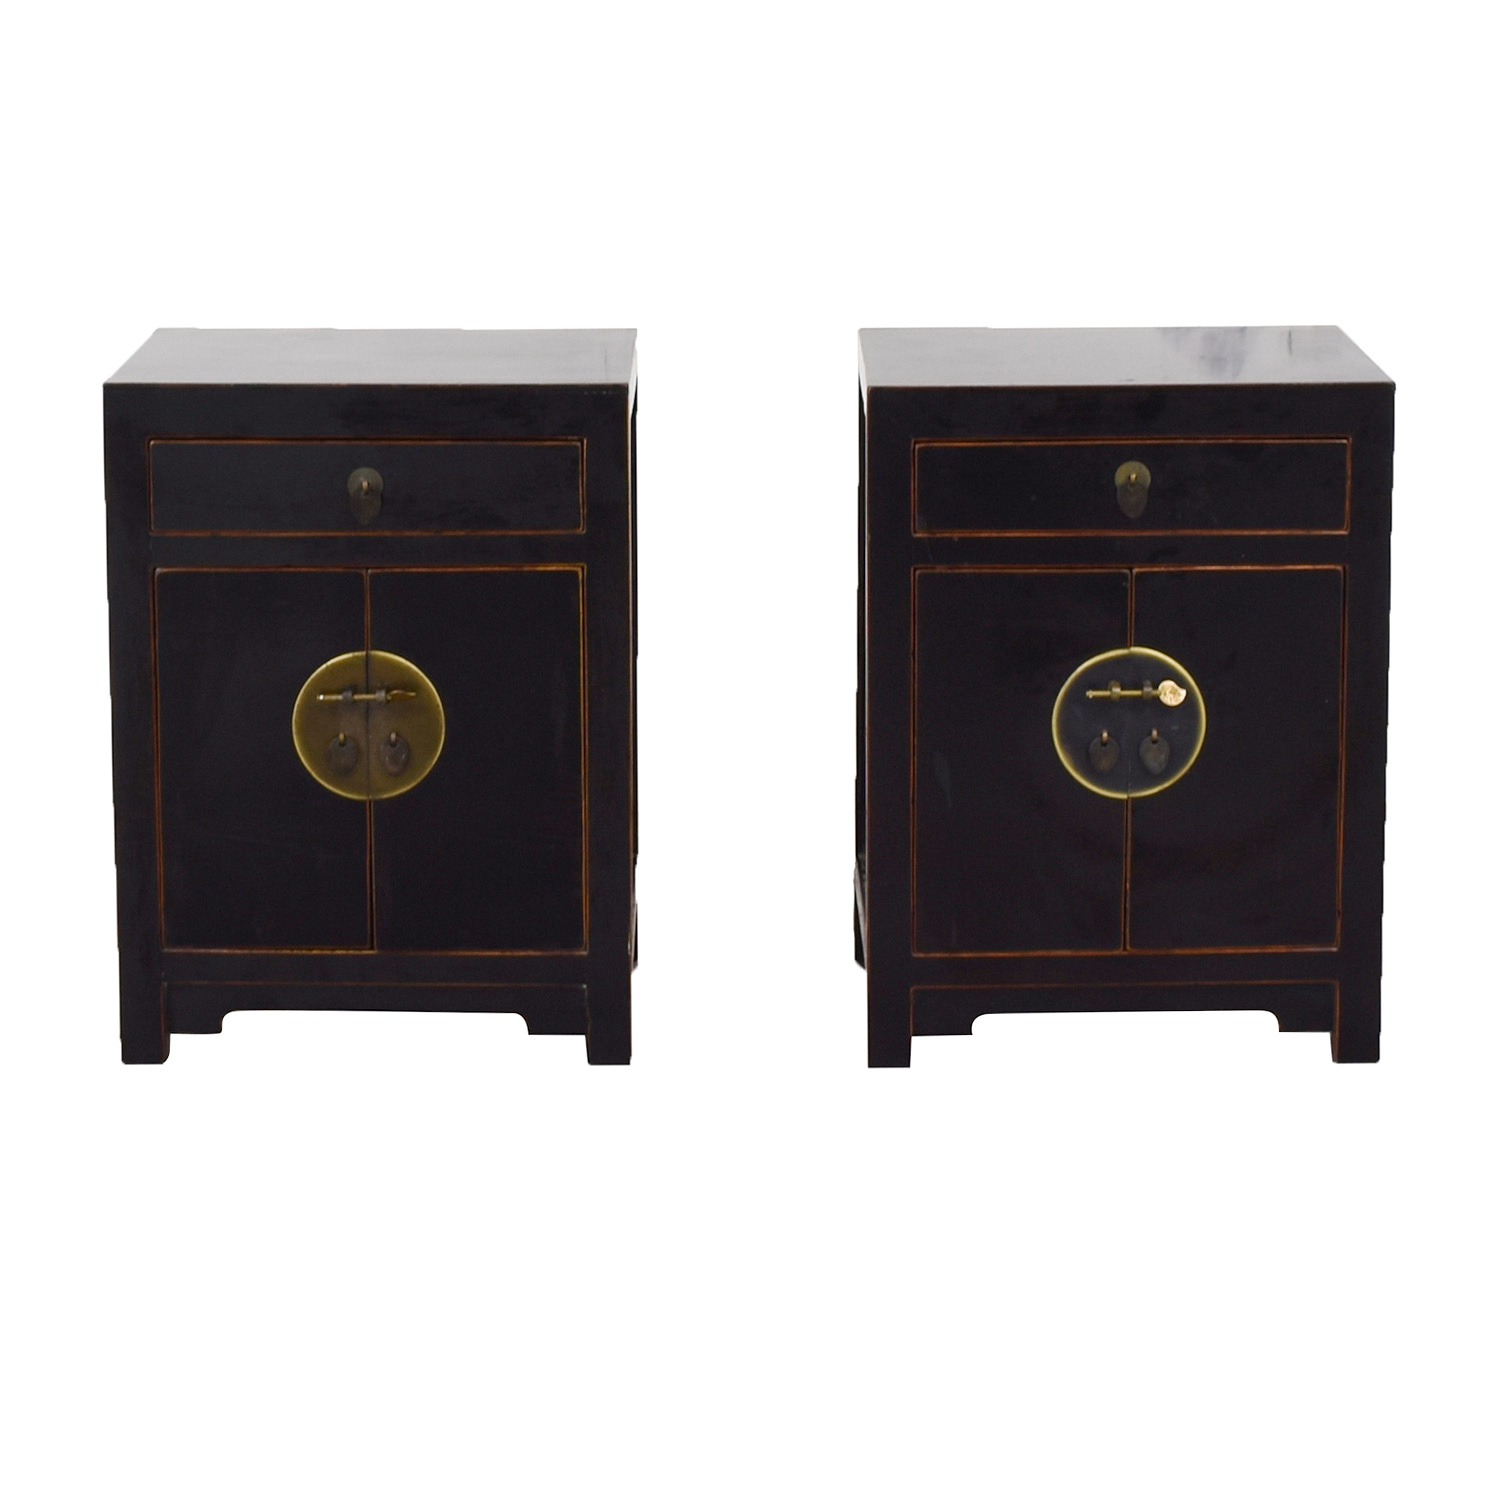 Pair of Asian Night Stands on sale